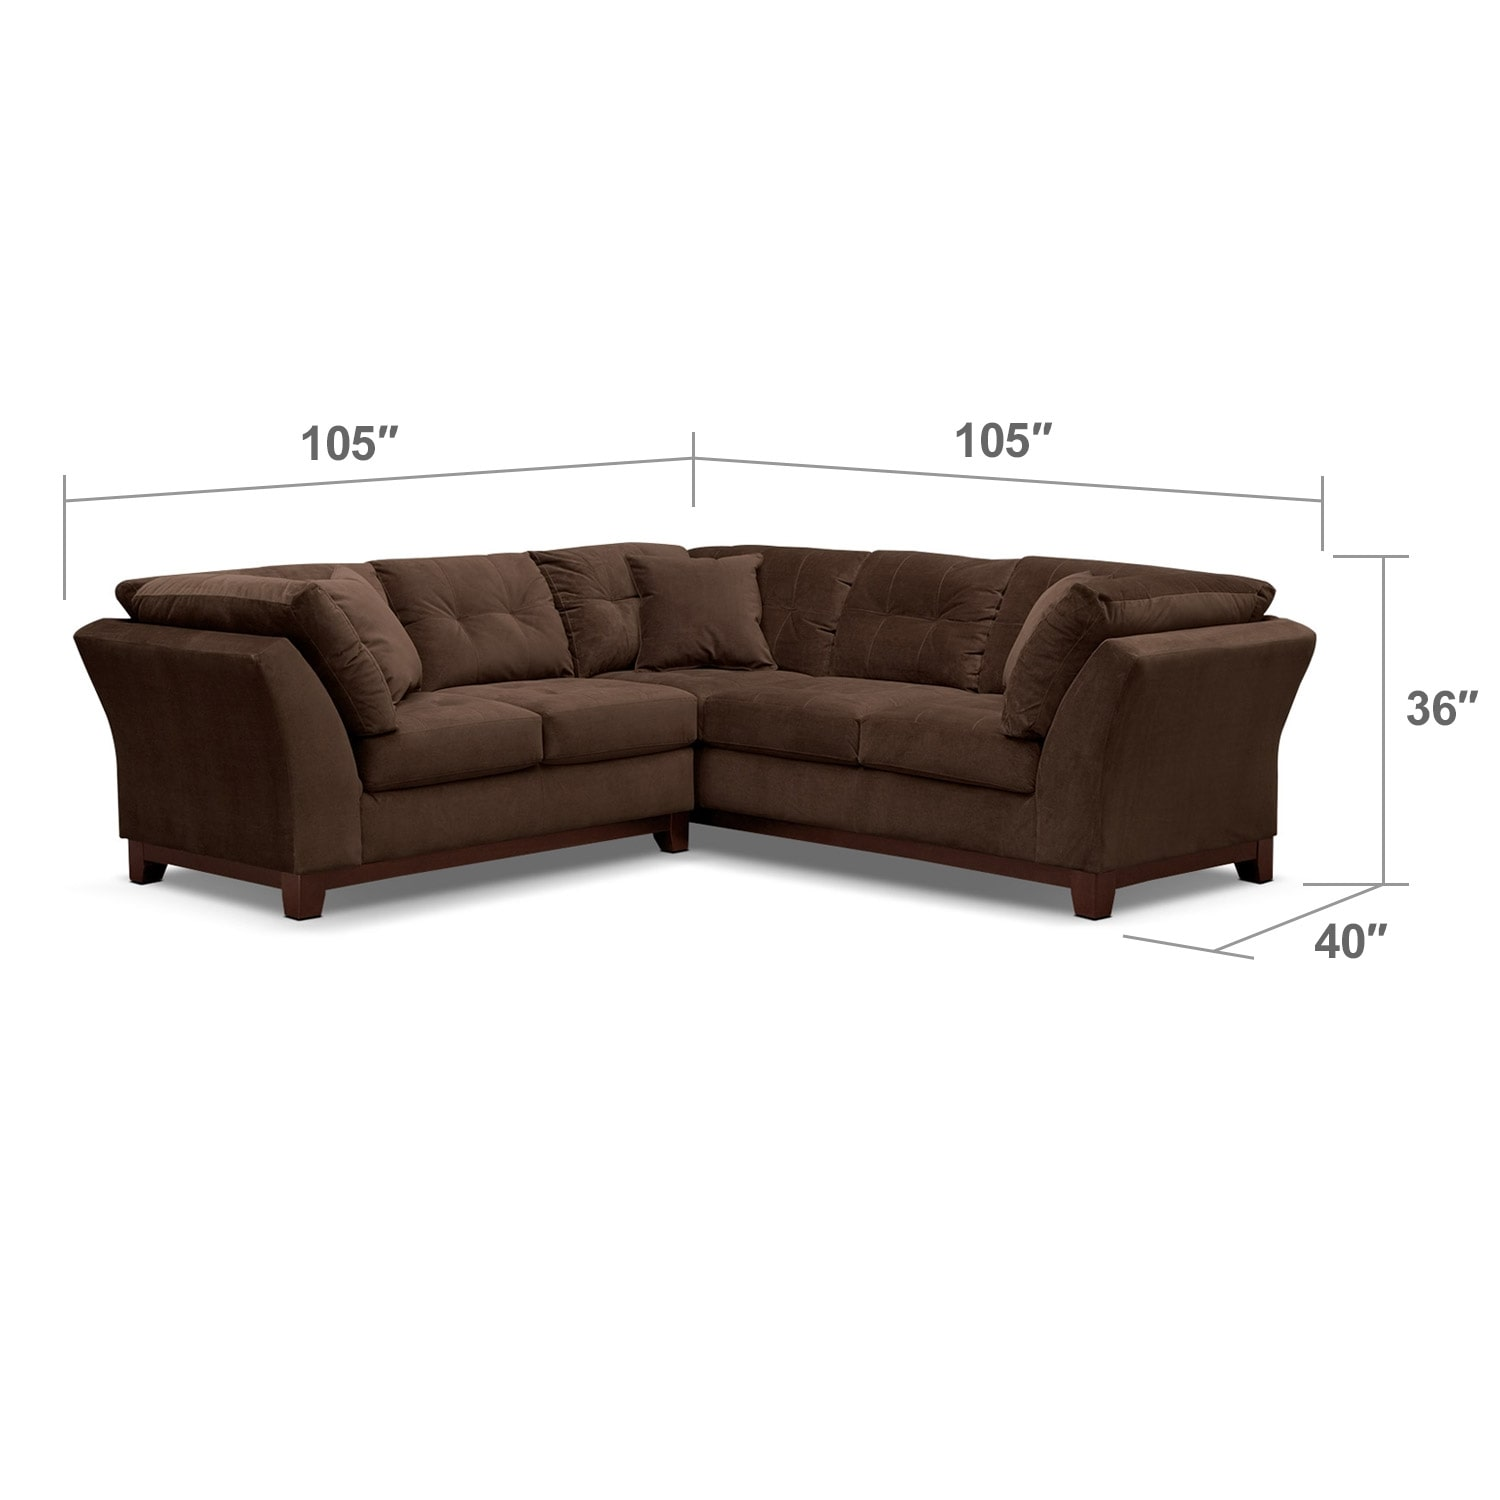 Living Room Furniture - Solace Chocolate II 2 Pc. Sectional (Alternate II)